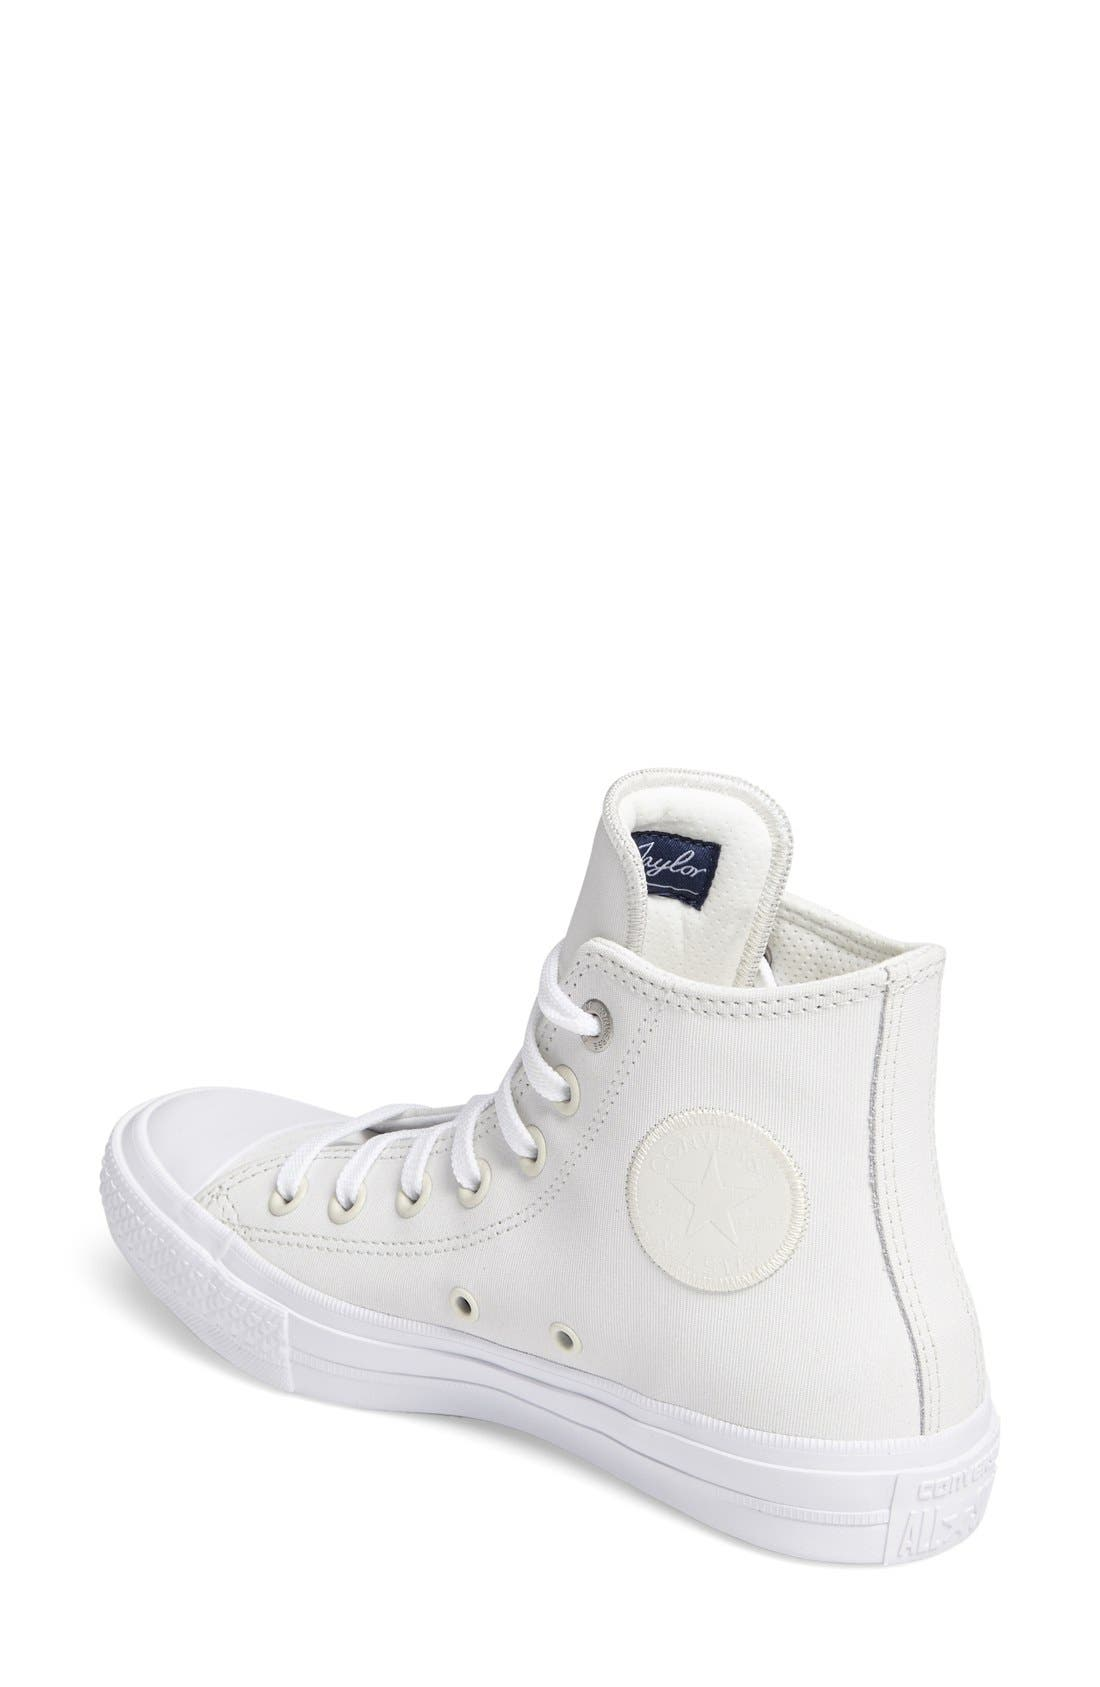 Chuck Taylor<sup>®</sup> All Star<sup>®</sup> II Two Tone High Top Sneaker,                             Alternate thumbnail 4, color,                             100